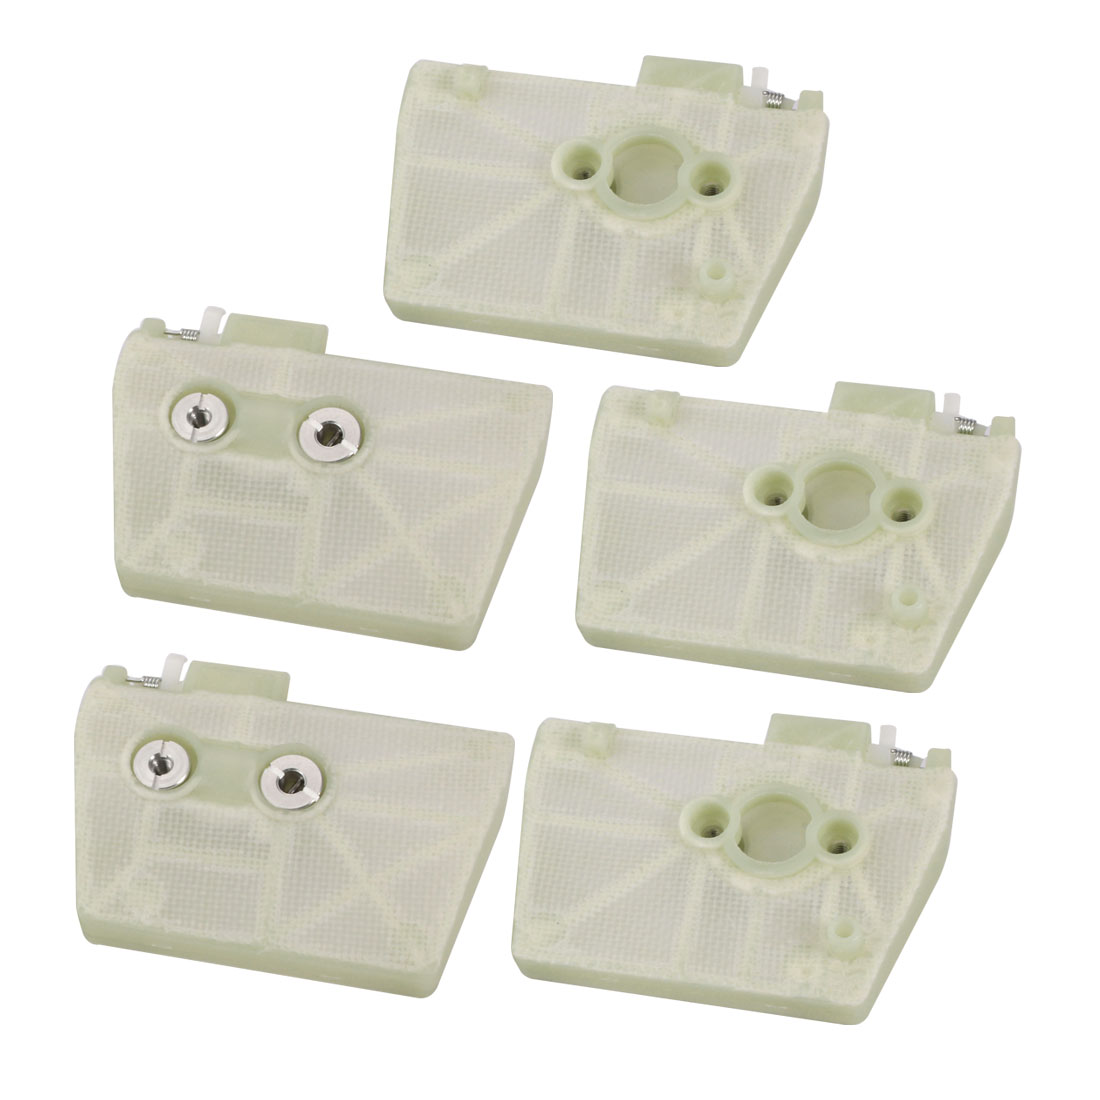 5pcs New Replacement Extra Guard Panel Engine 380 Air Filter Cleaner Accessory